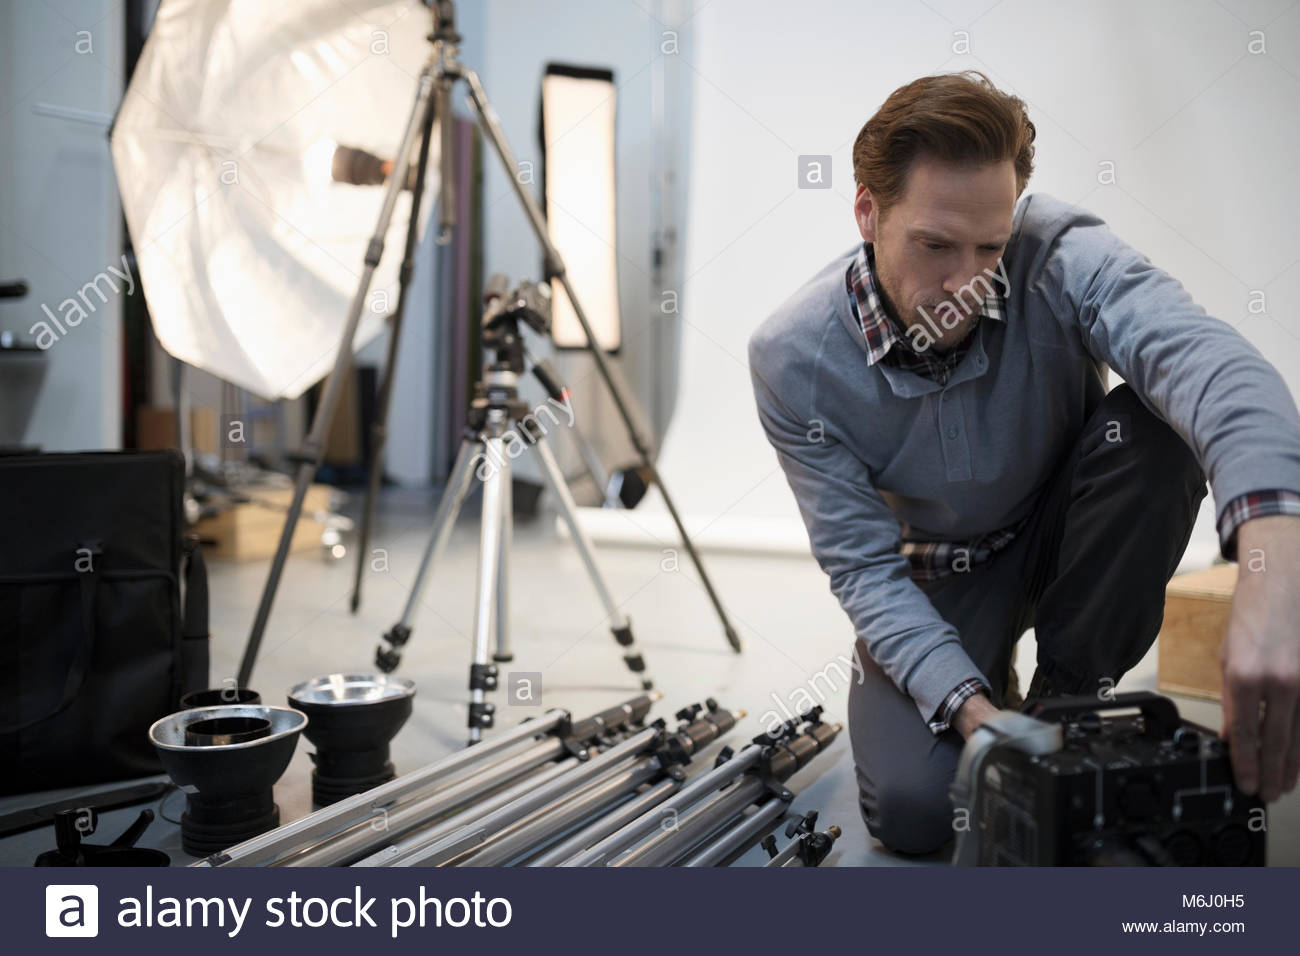 Male photographer preparing equipment for photo shoot in studio - Stock Image